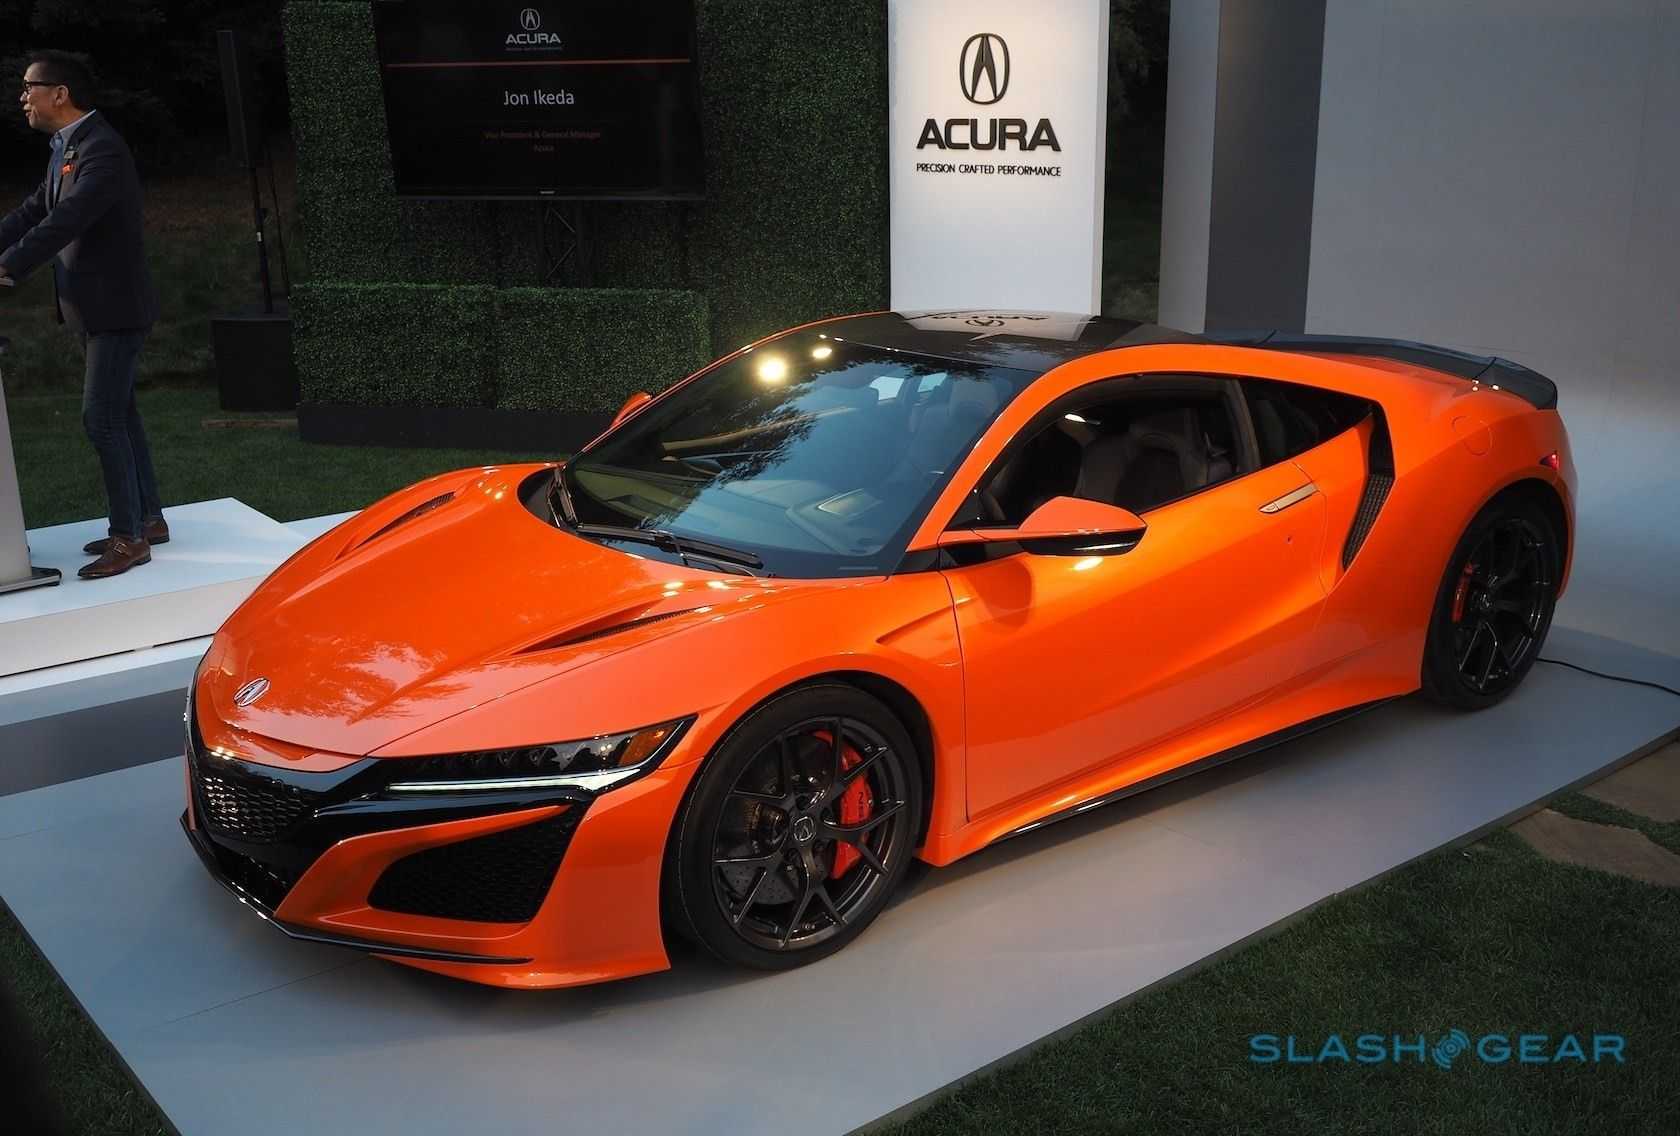 2019 Honda Nsx Review Specs And Release Date Redesign Price And Review Concept Redesign And Review Release Date Price And Review Pic Nsx Acura Nsx Honda